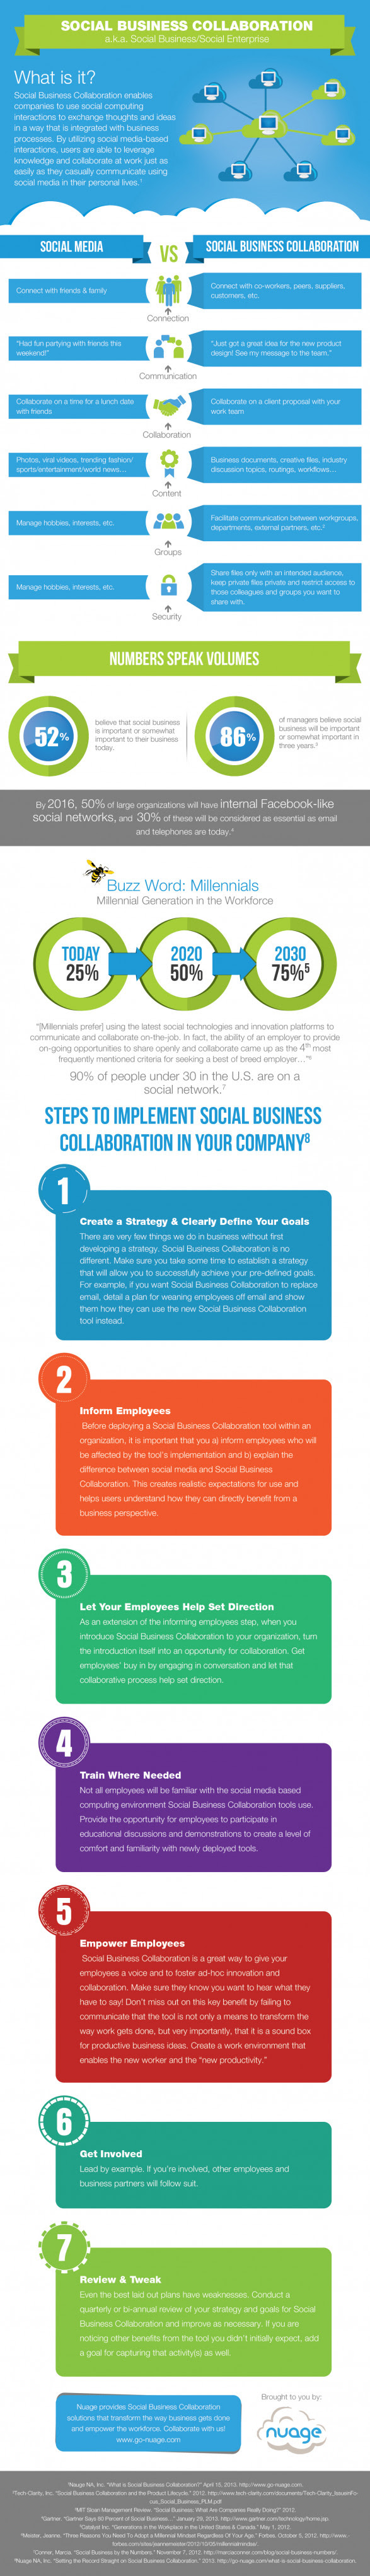 Setting the Record Straight on Social Business [Collaboration]